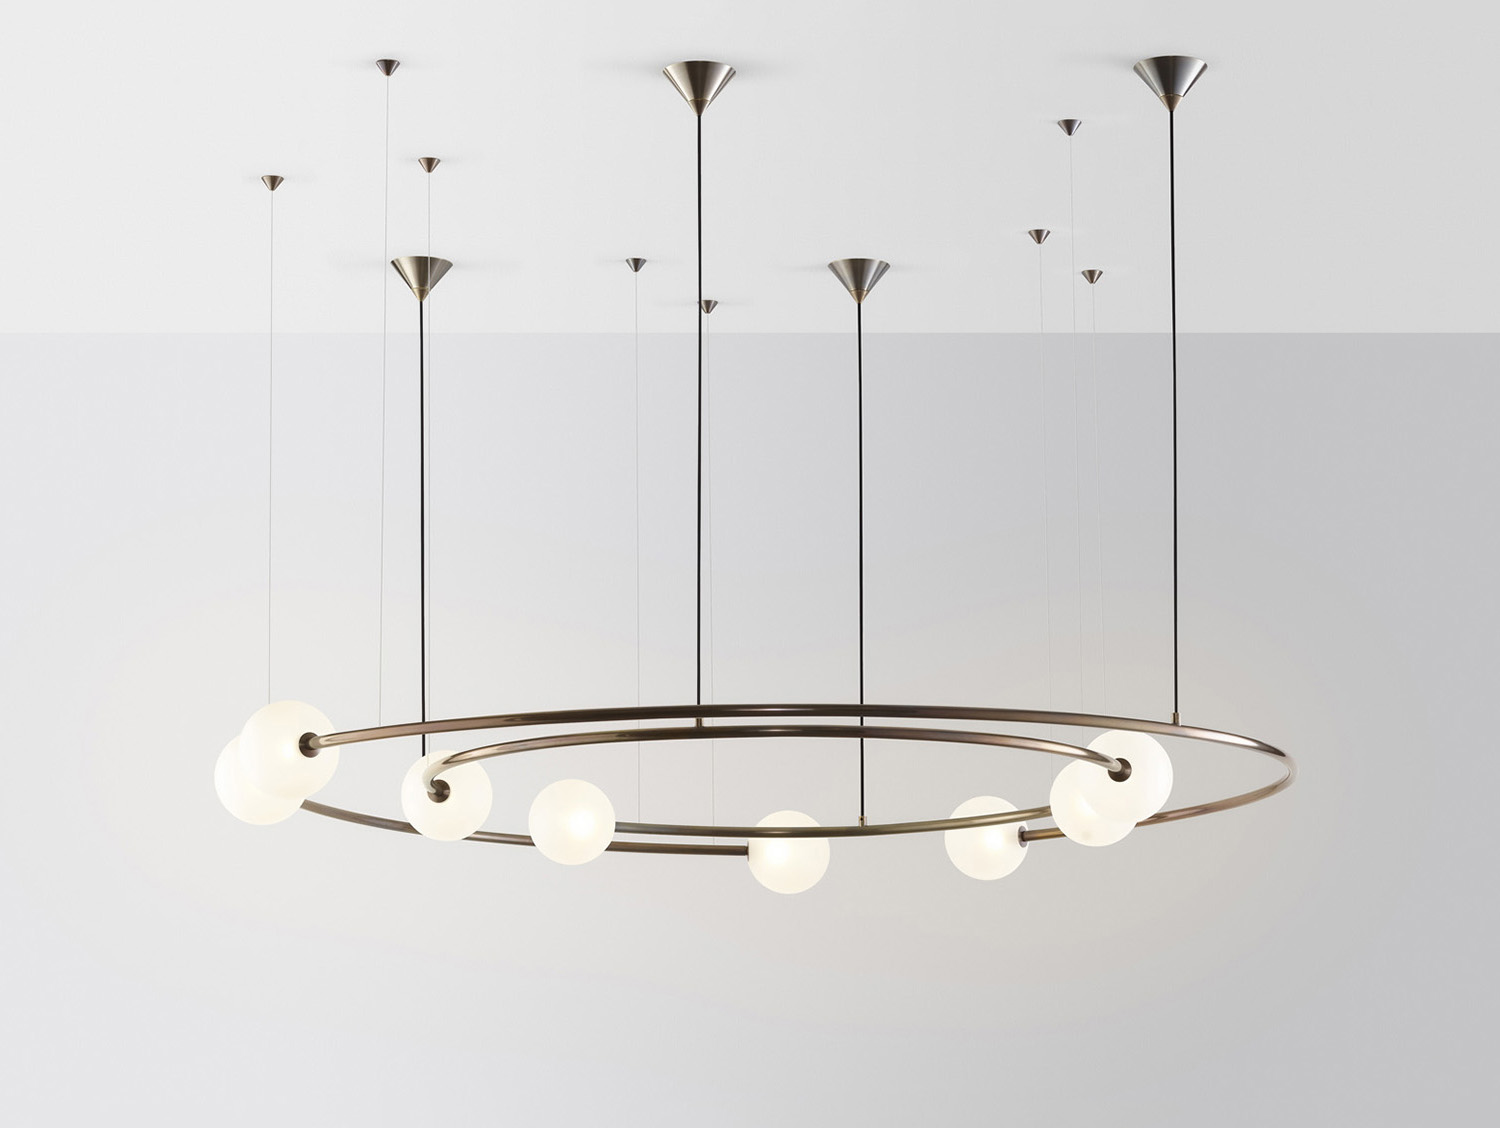 Volker Haug's 'Oddments' chandelier in glass and brass created a stir - as did his excellent bijoux stand that took out the DENFAIR Best Small Stand Award - for the second year in a row.